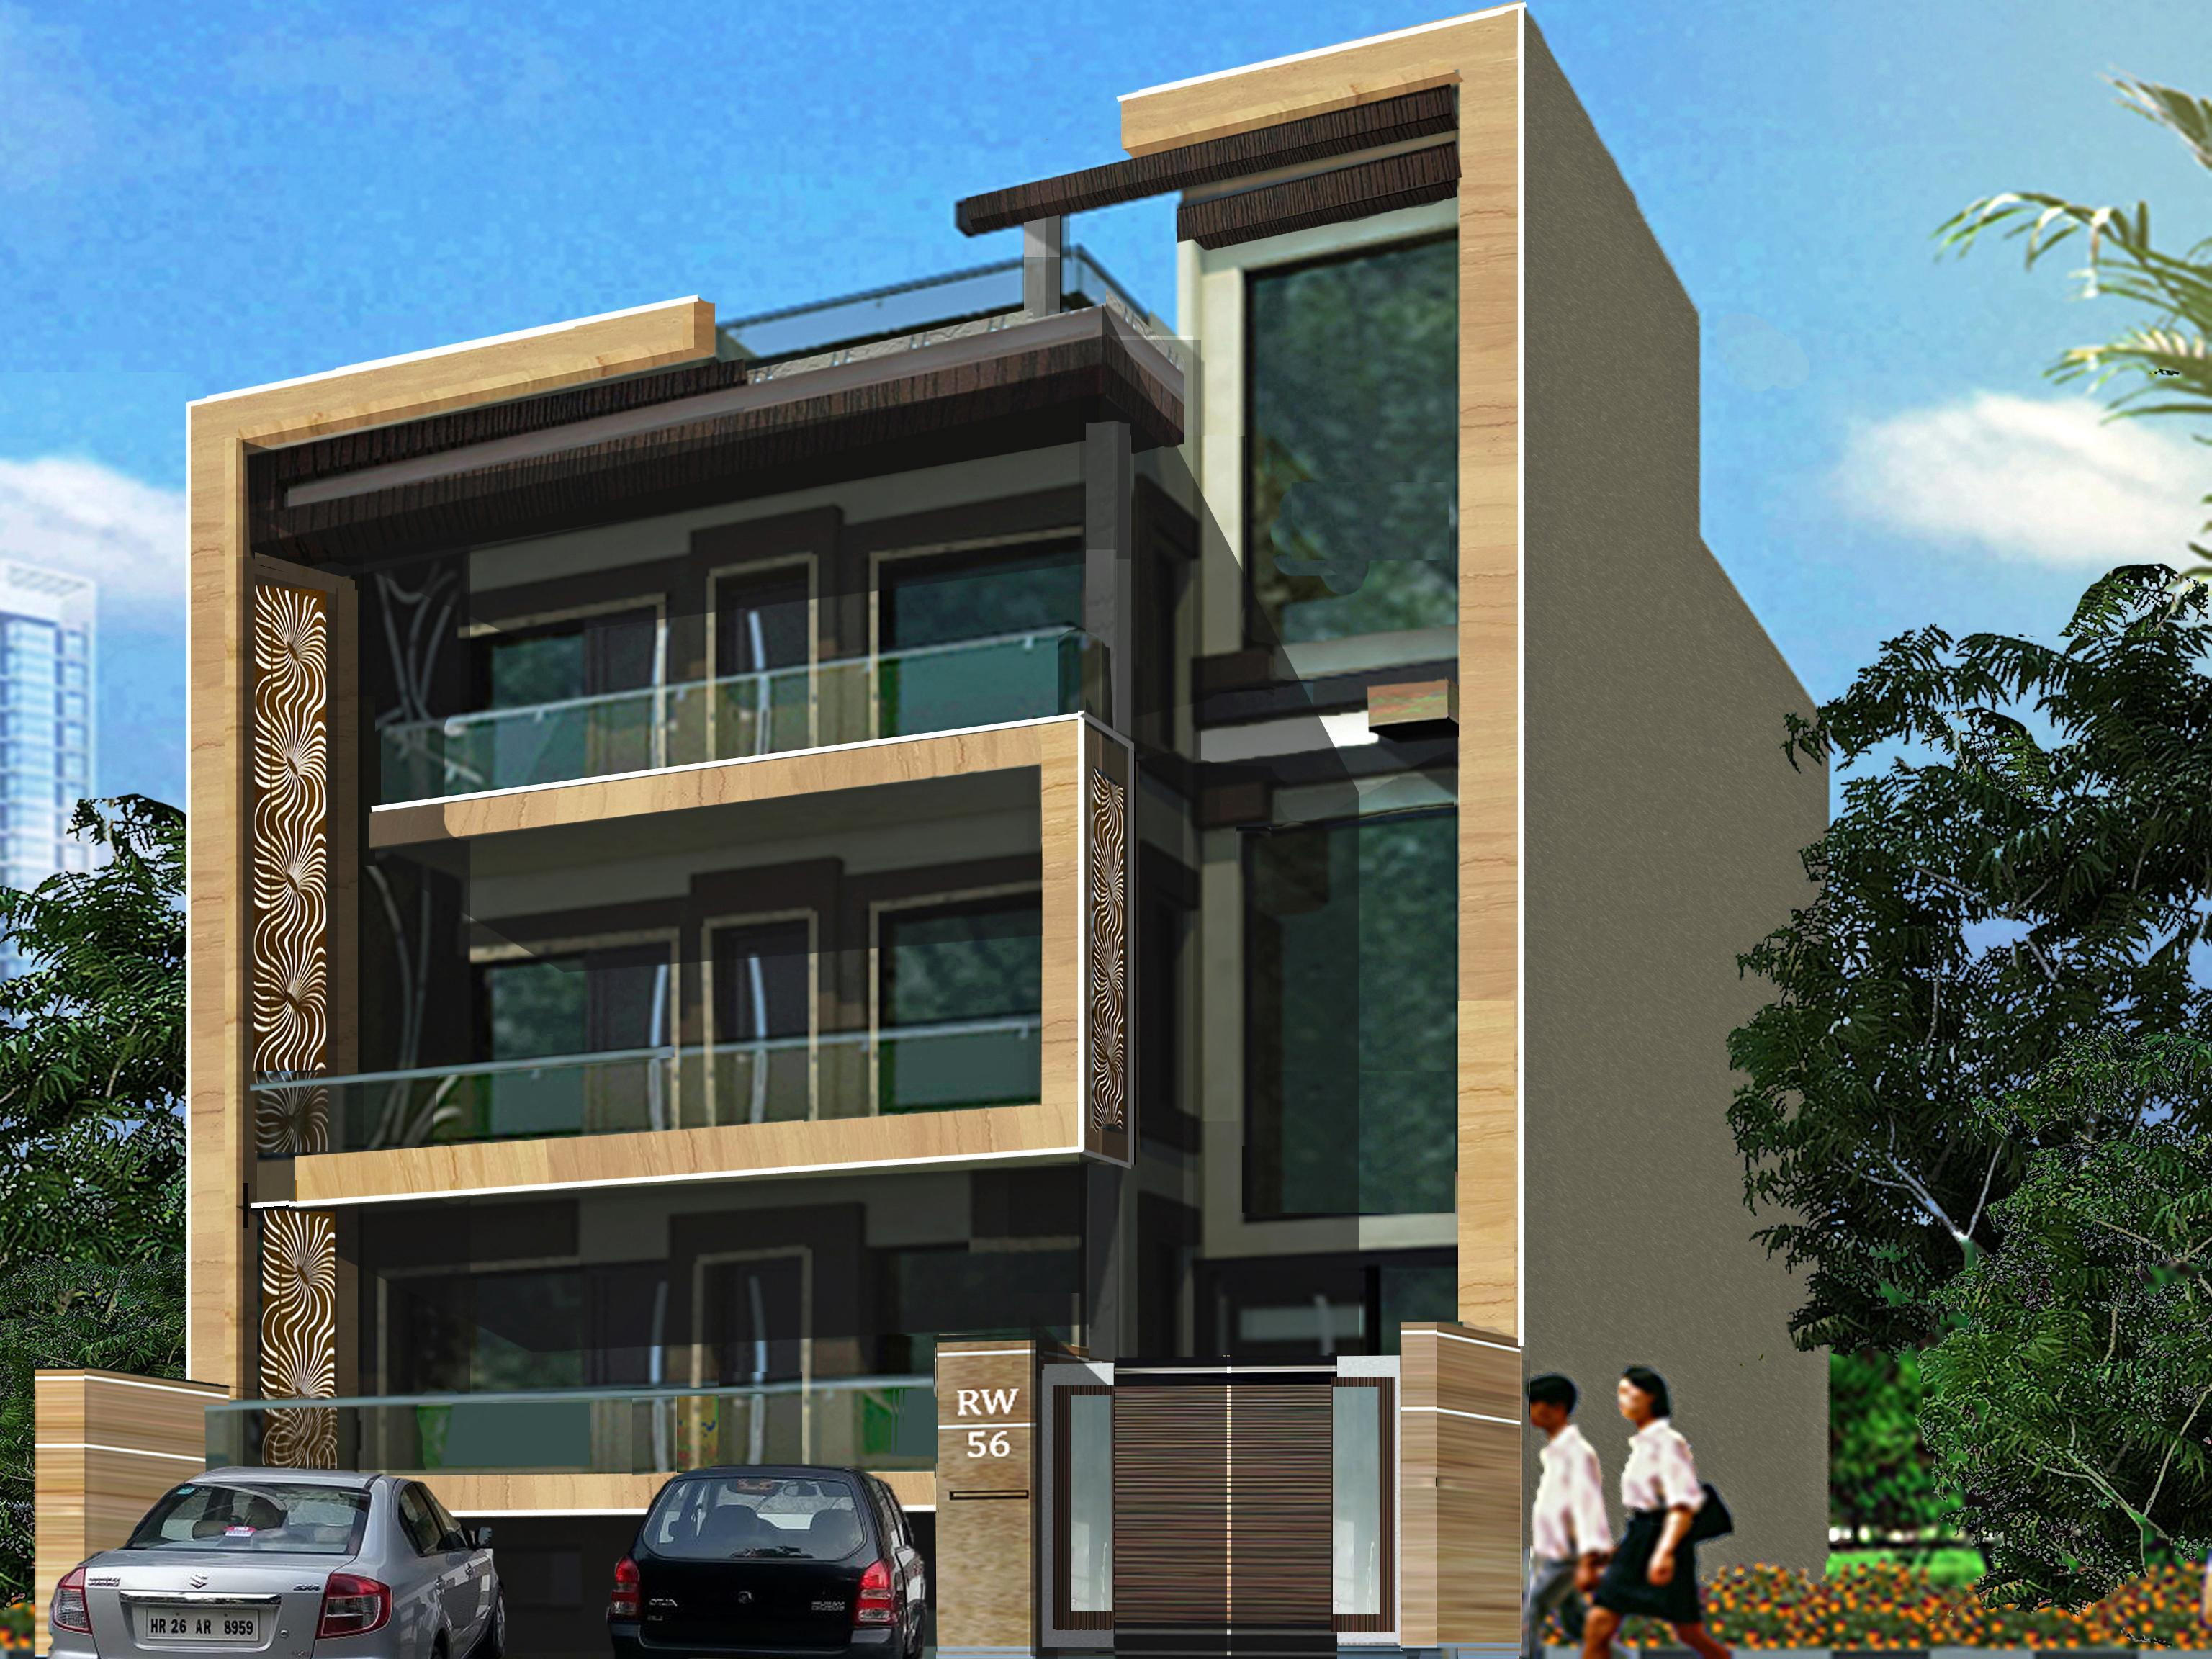 exterior for RESIDENCE AT RW 5....